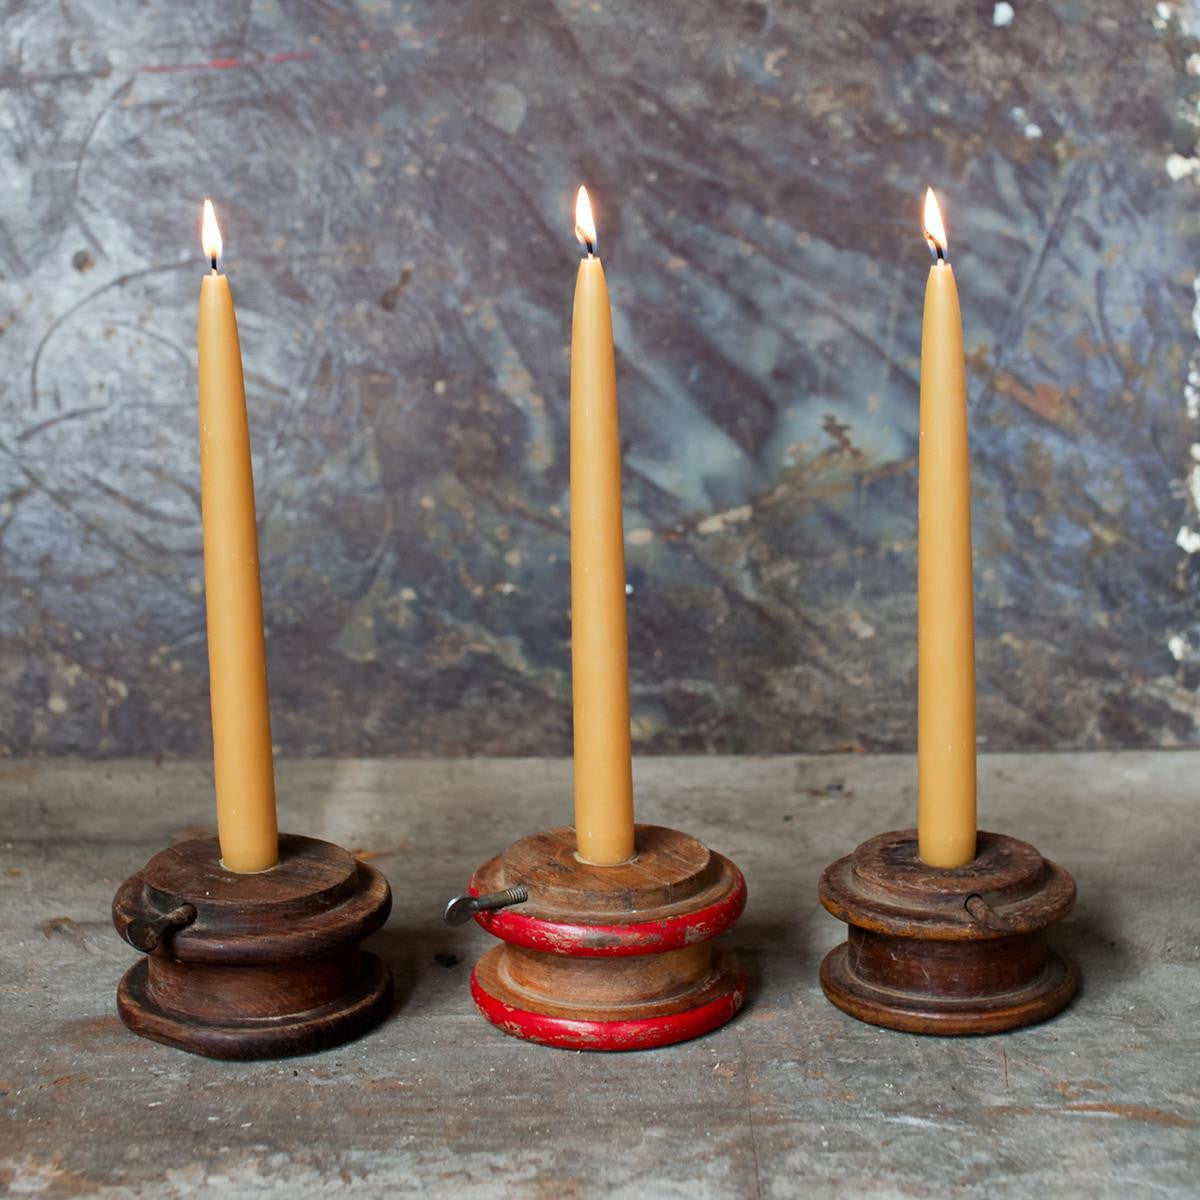 ... Reclaimed Fair Trade Wood Pully Candle Holder - Candlestick Holders -  Shop Nectar - 3 - Reclaimed Fair Trade Wood Pully Candle Holder SHOP NECTAR